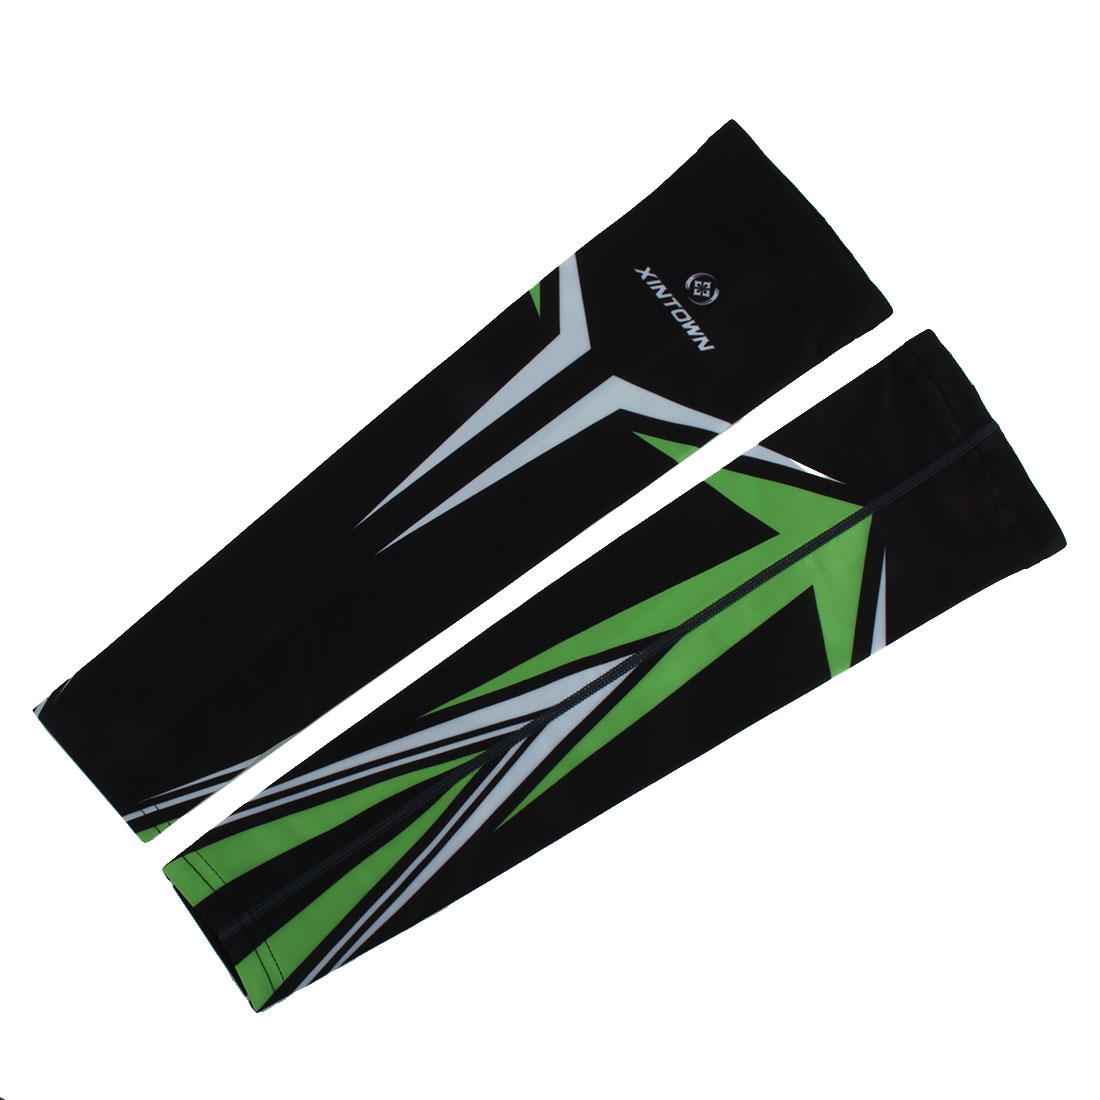 XINTOWN Authorized Unisex Cycling Football Arm Sleeves Cover Warmer #10 S Pair by